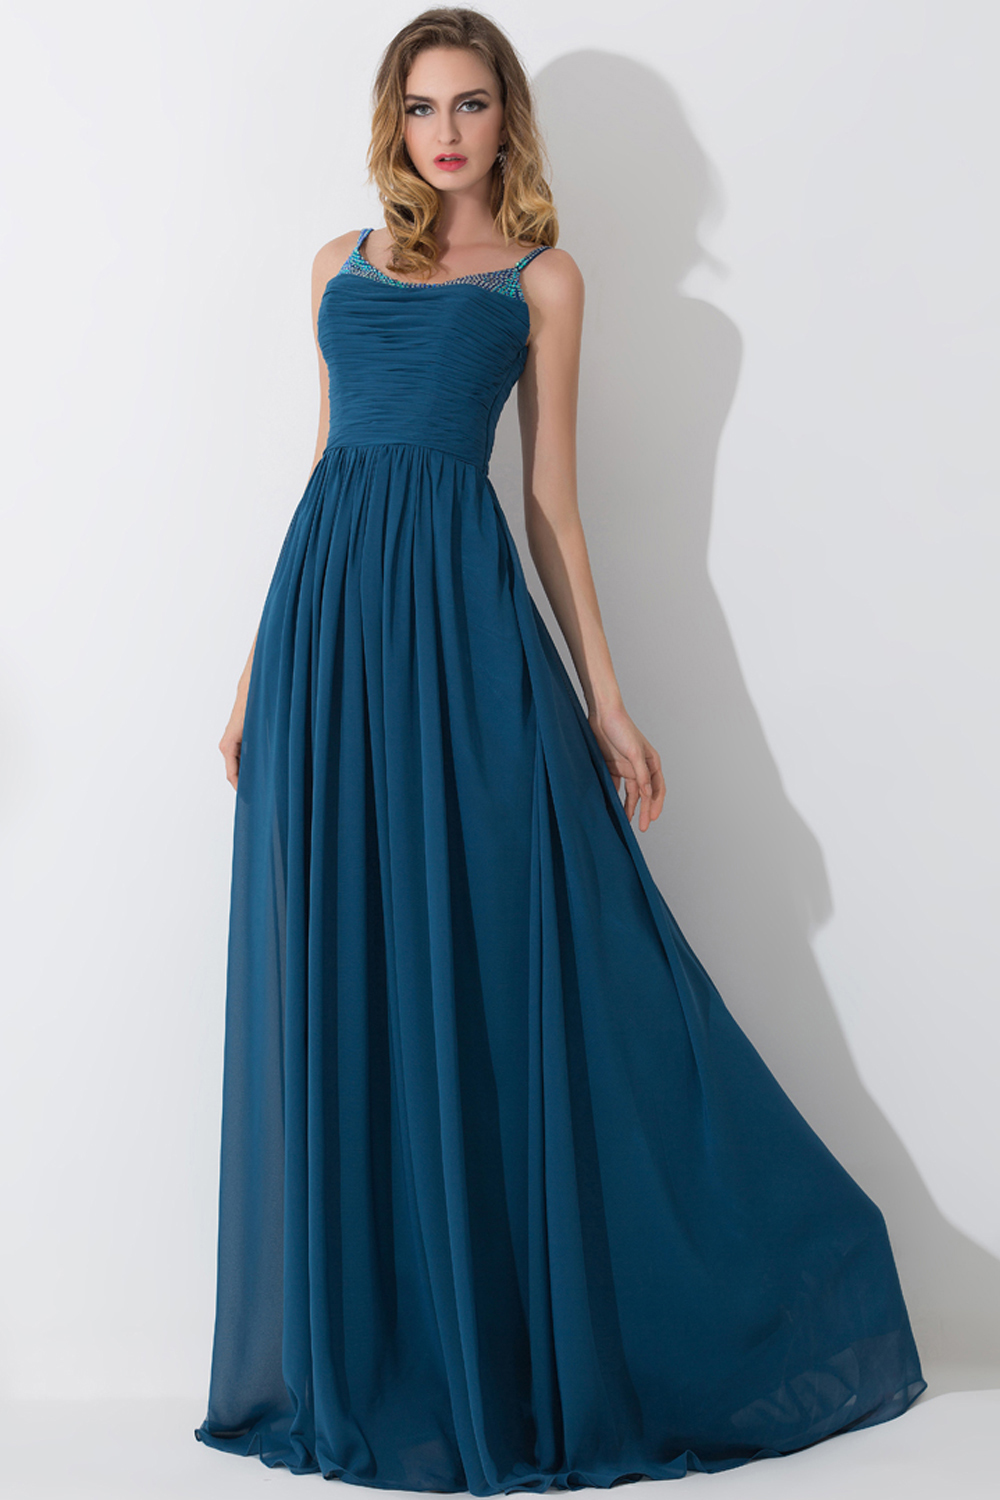 A-Line/Princess Scoop Neckline Floor Length Chiffon Bridesmaid Dress with Pleats